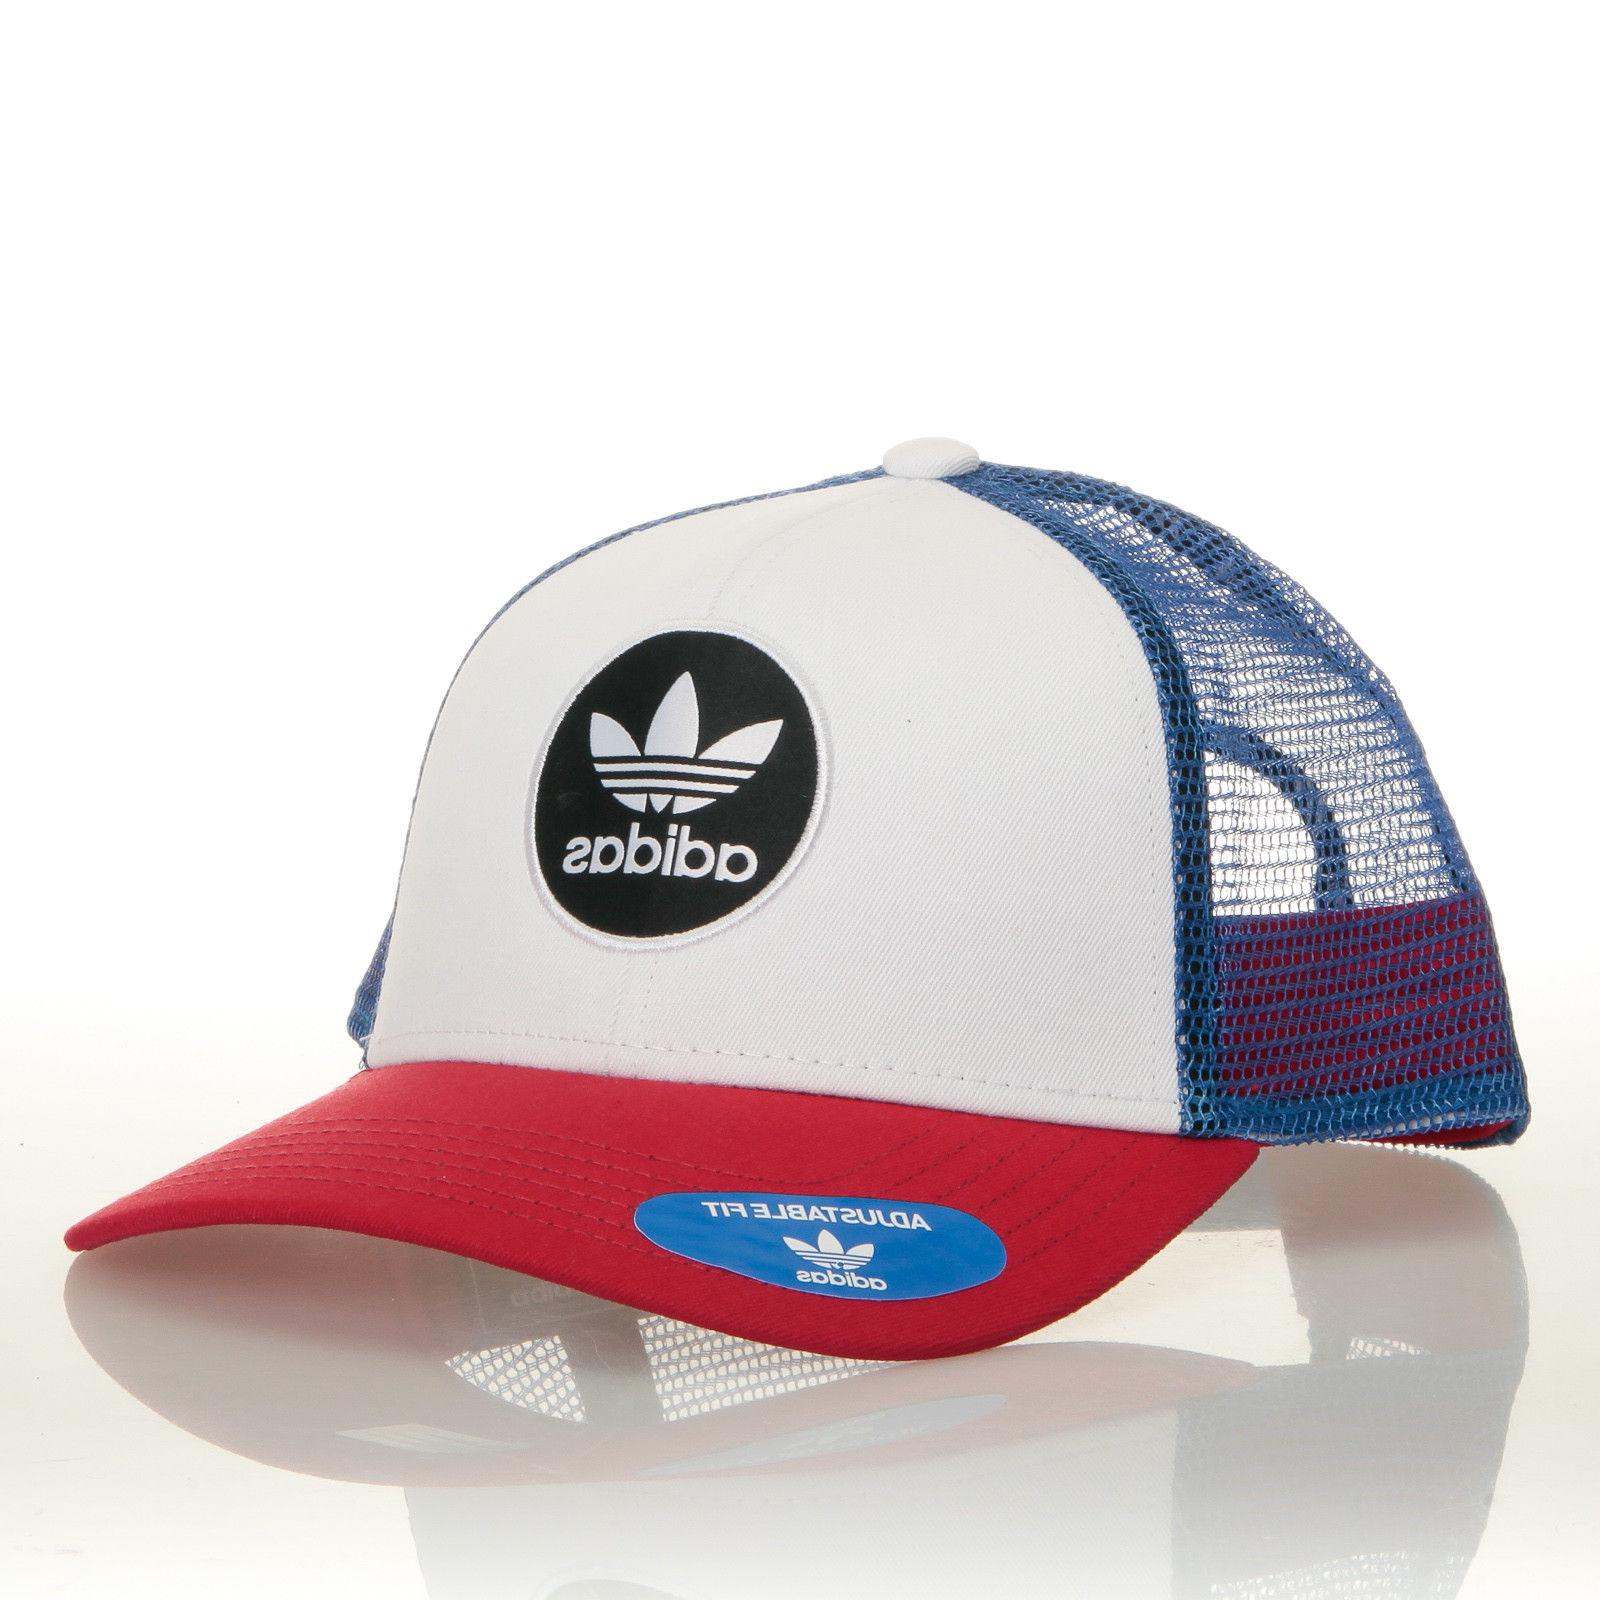 Adidas Originals OG Circle Red White Blue Trucker Hat Cap - f72918a25d33